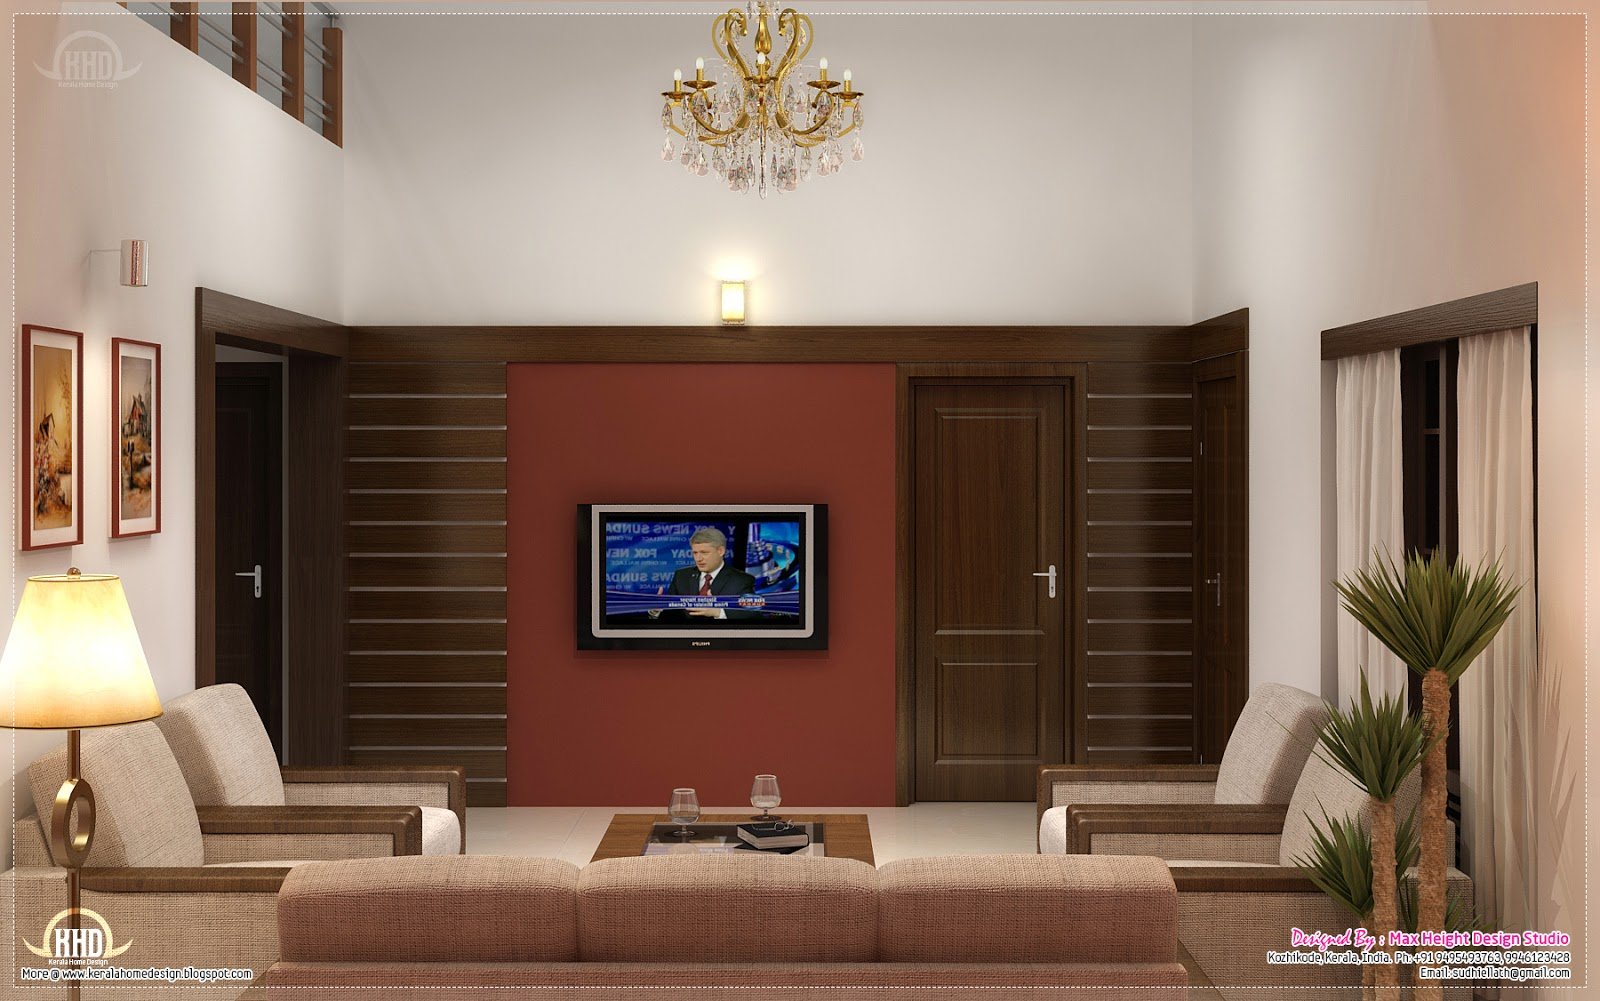 Kerala home interior design photos home design ideas for Kerala home interior designs photos